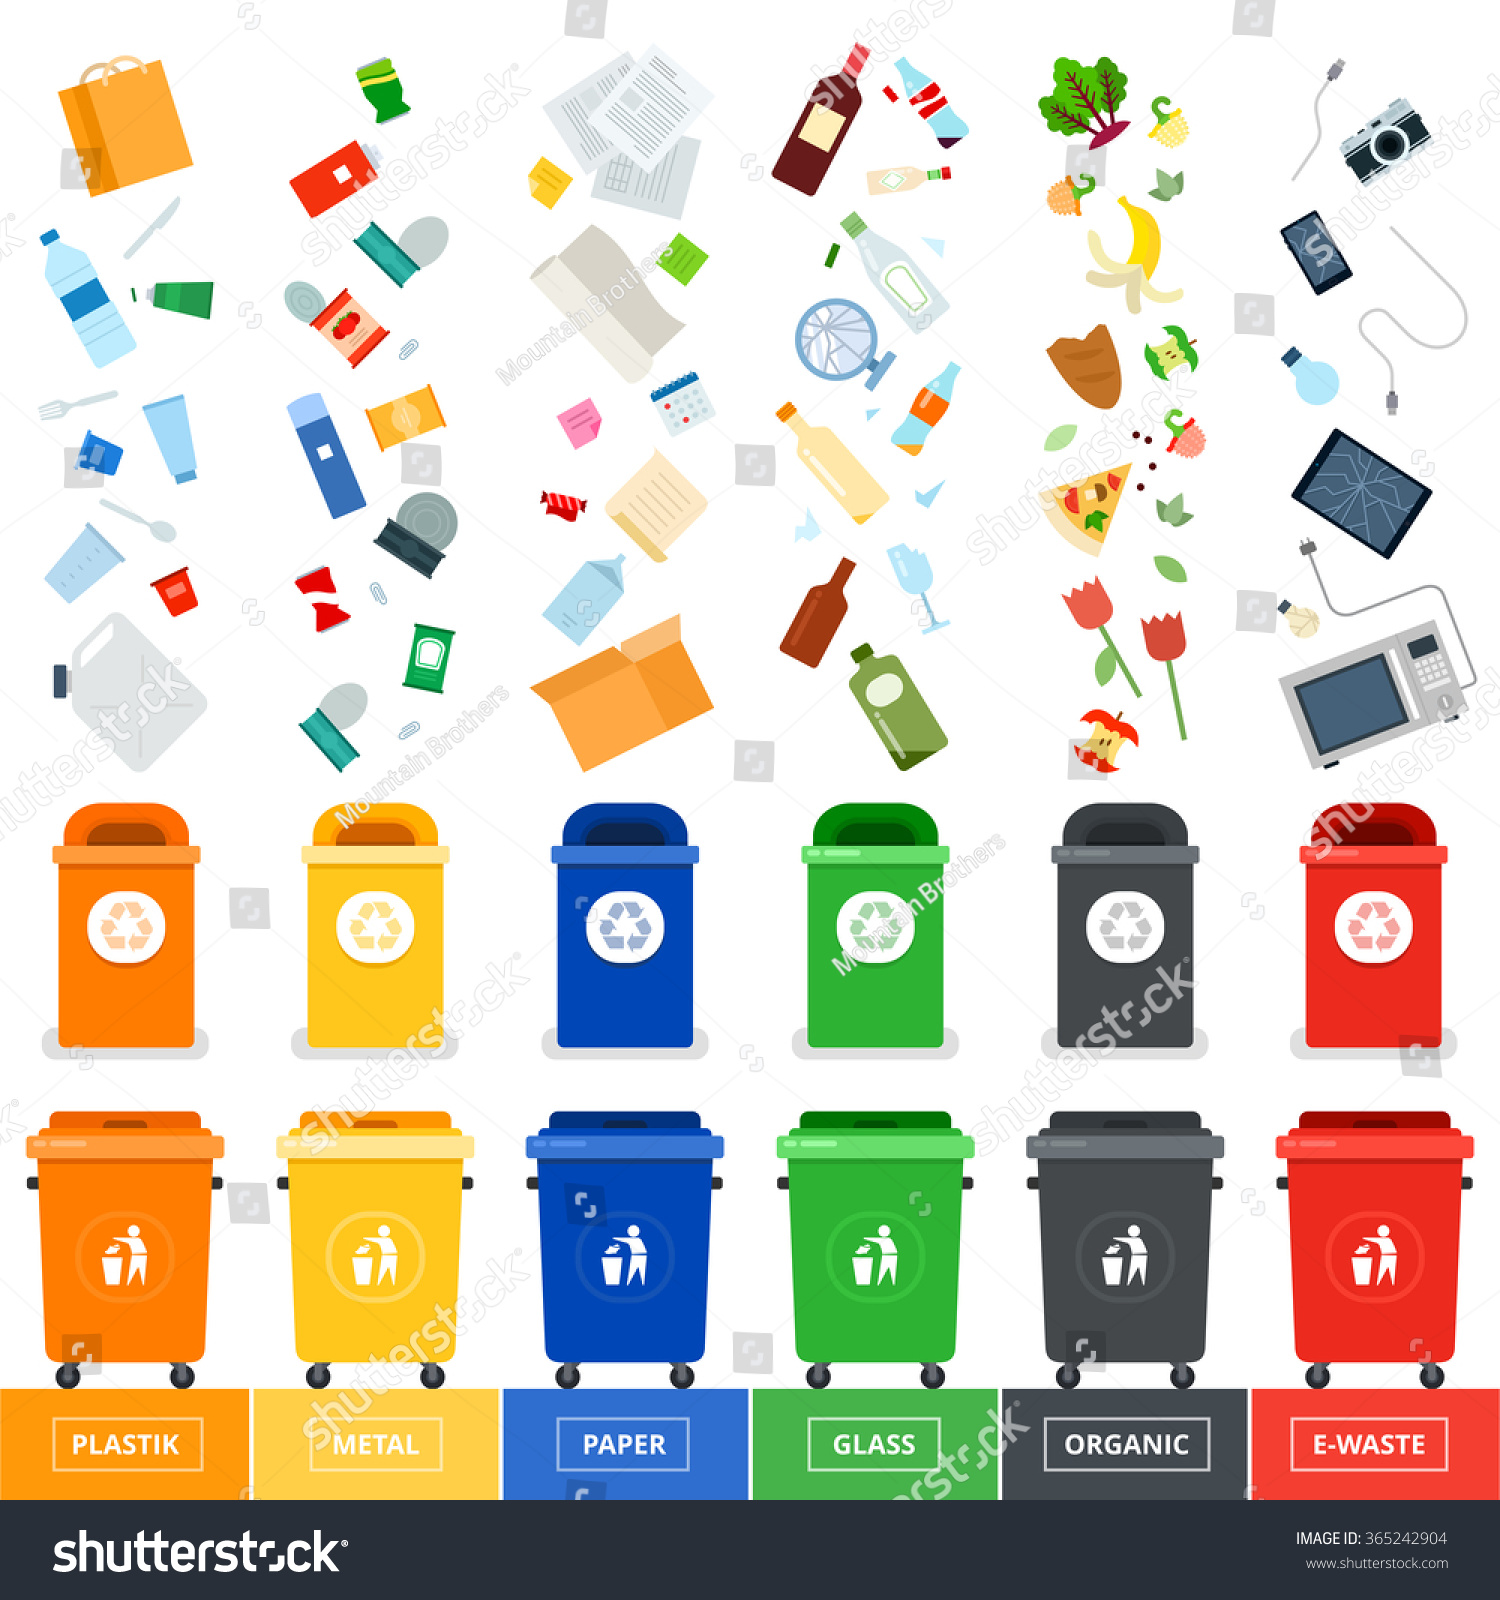 Garbage Cans Vector Flat Illustrations Many Stock Vector